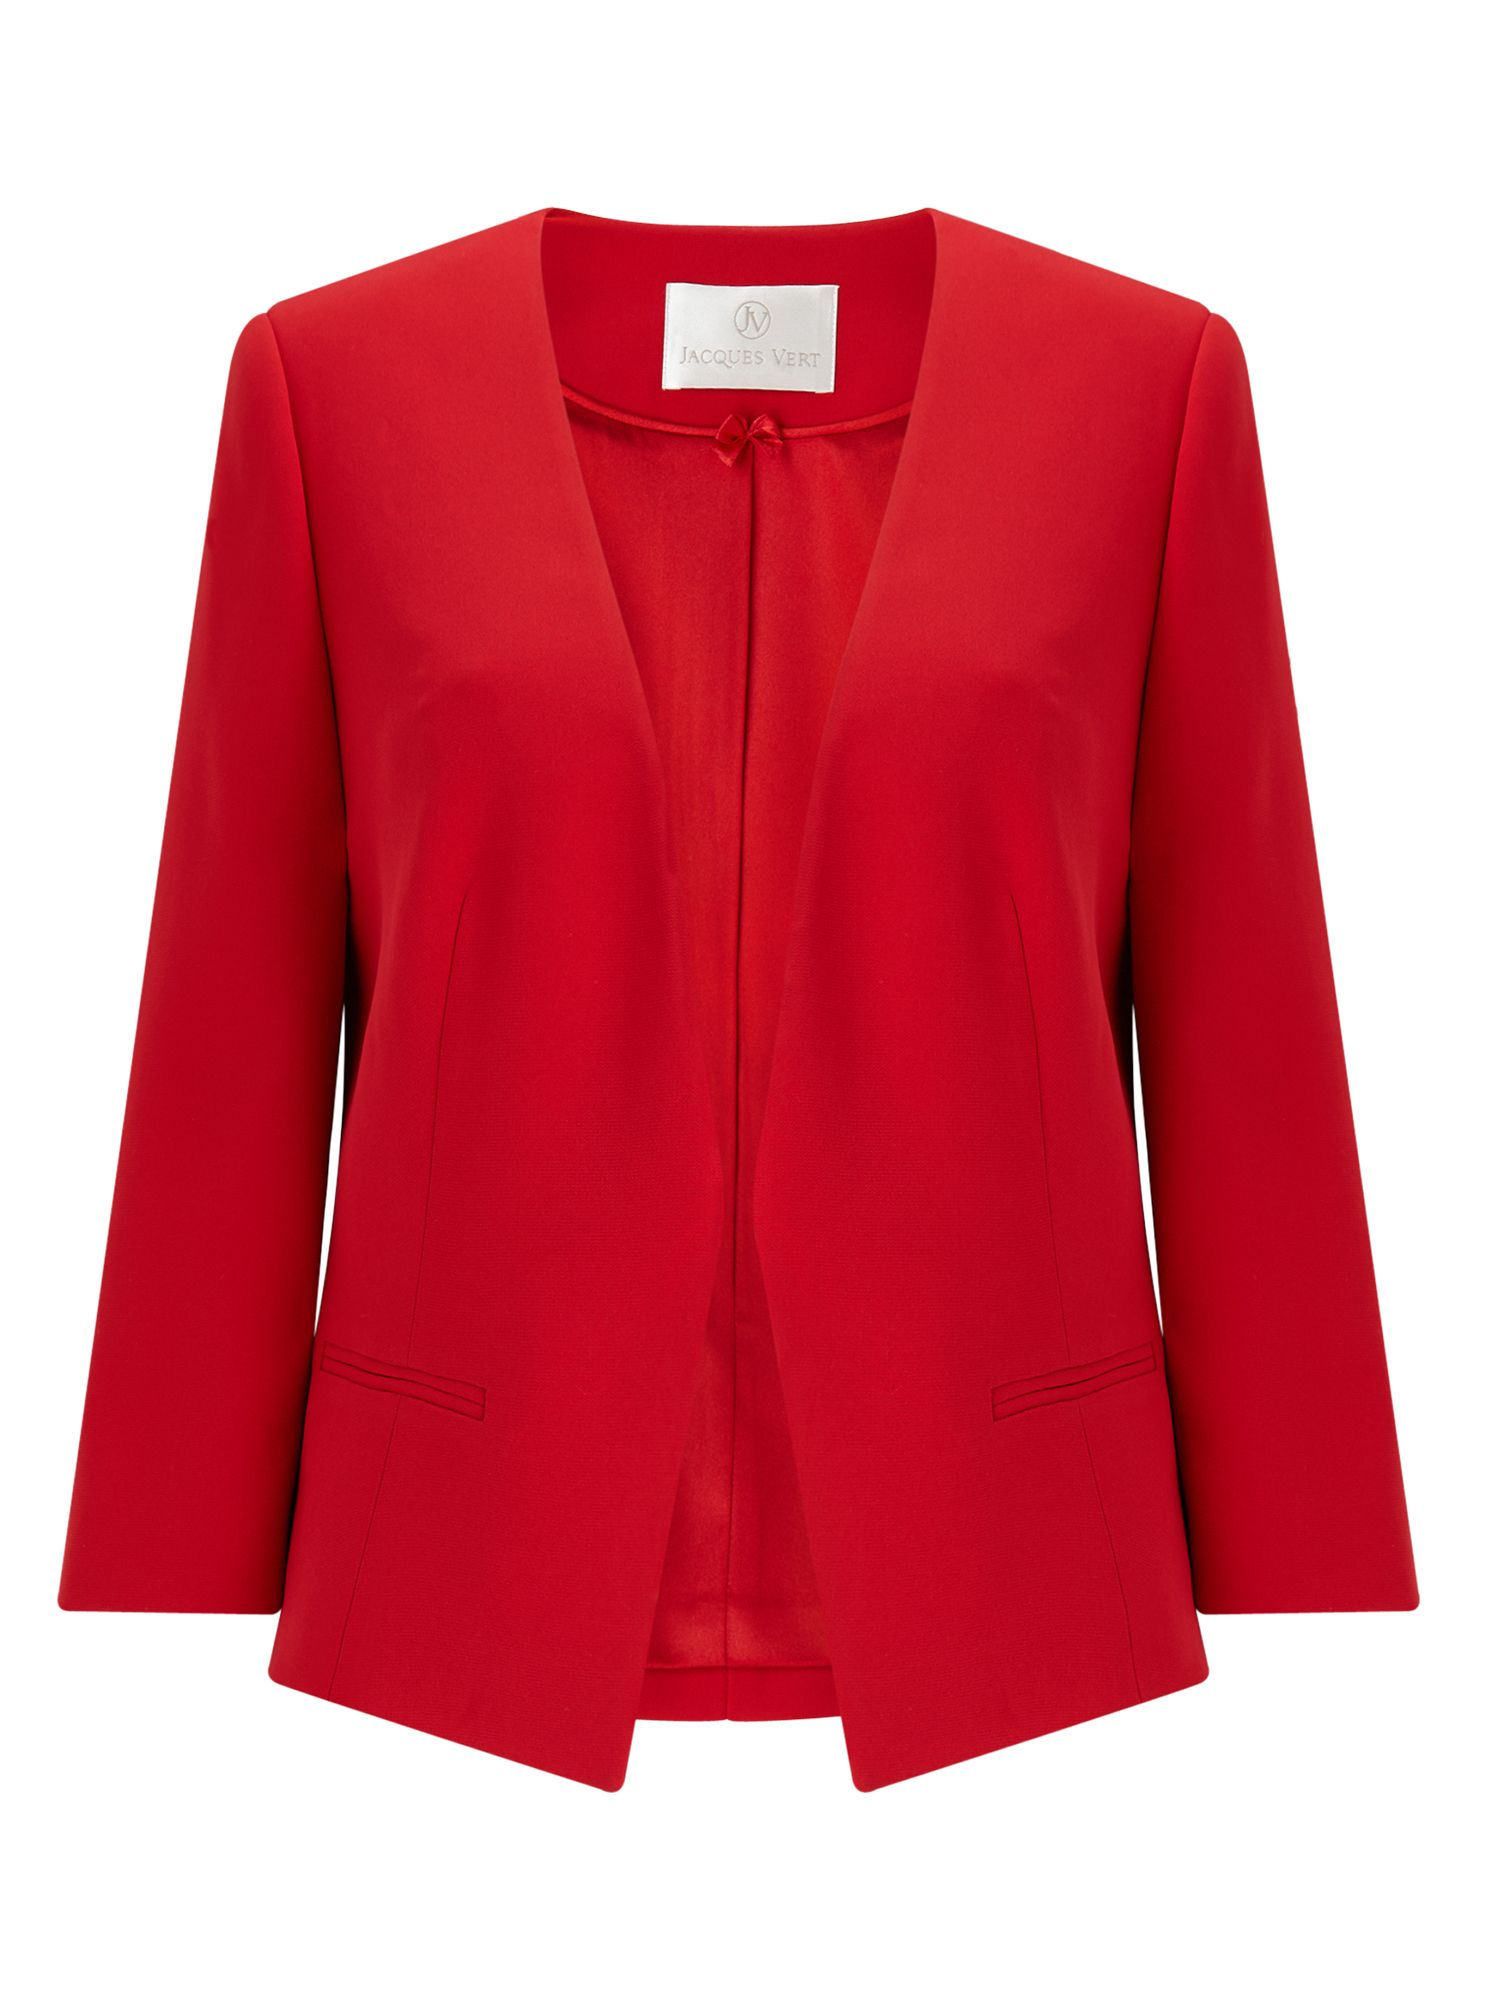 Jacques Vert Edge To Edge Jacket, Red